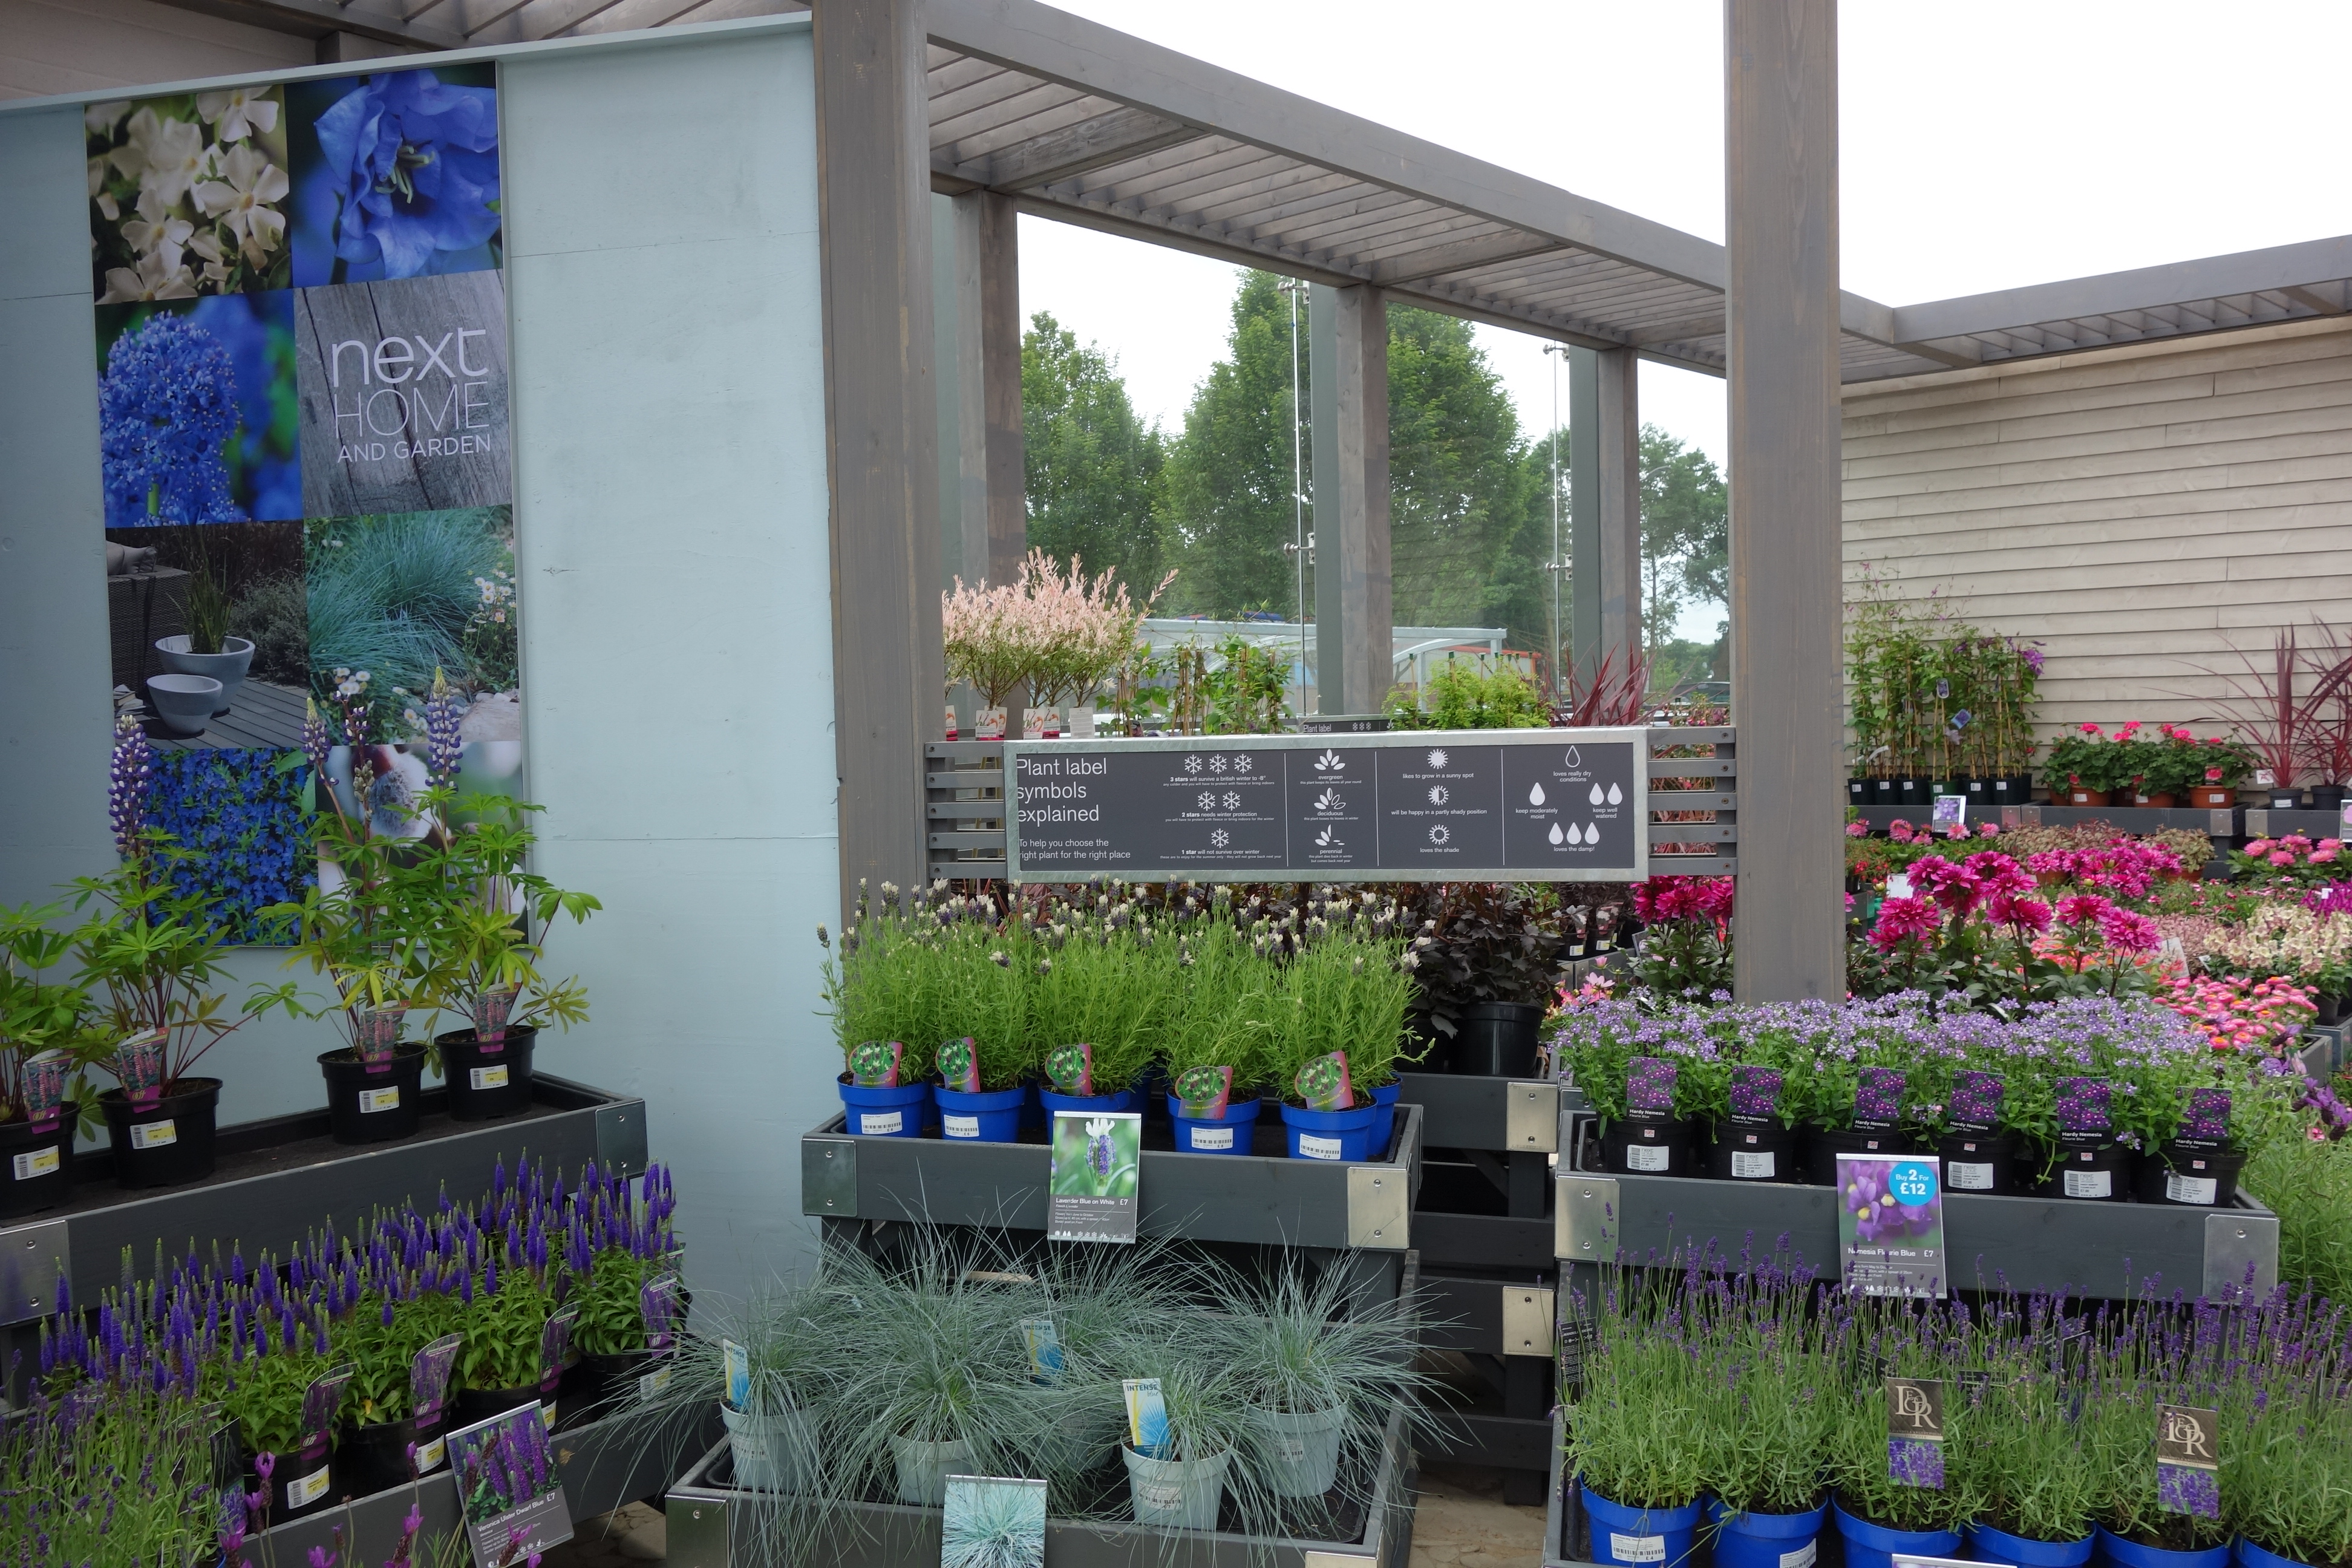 visiting the new next home and garden store on opening day